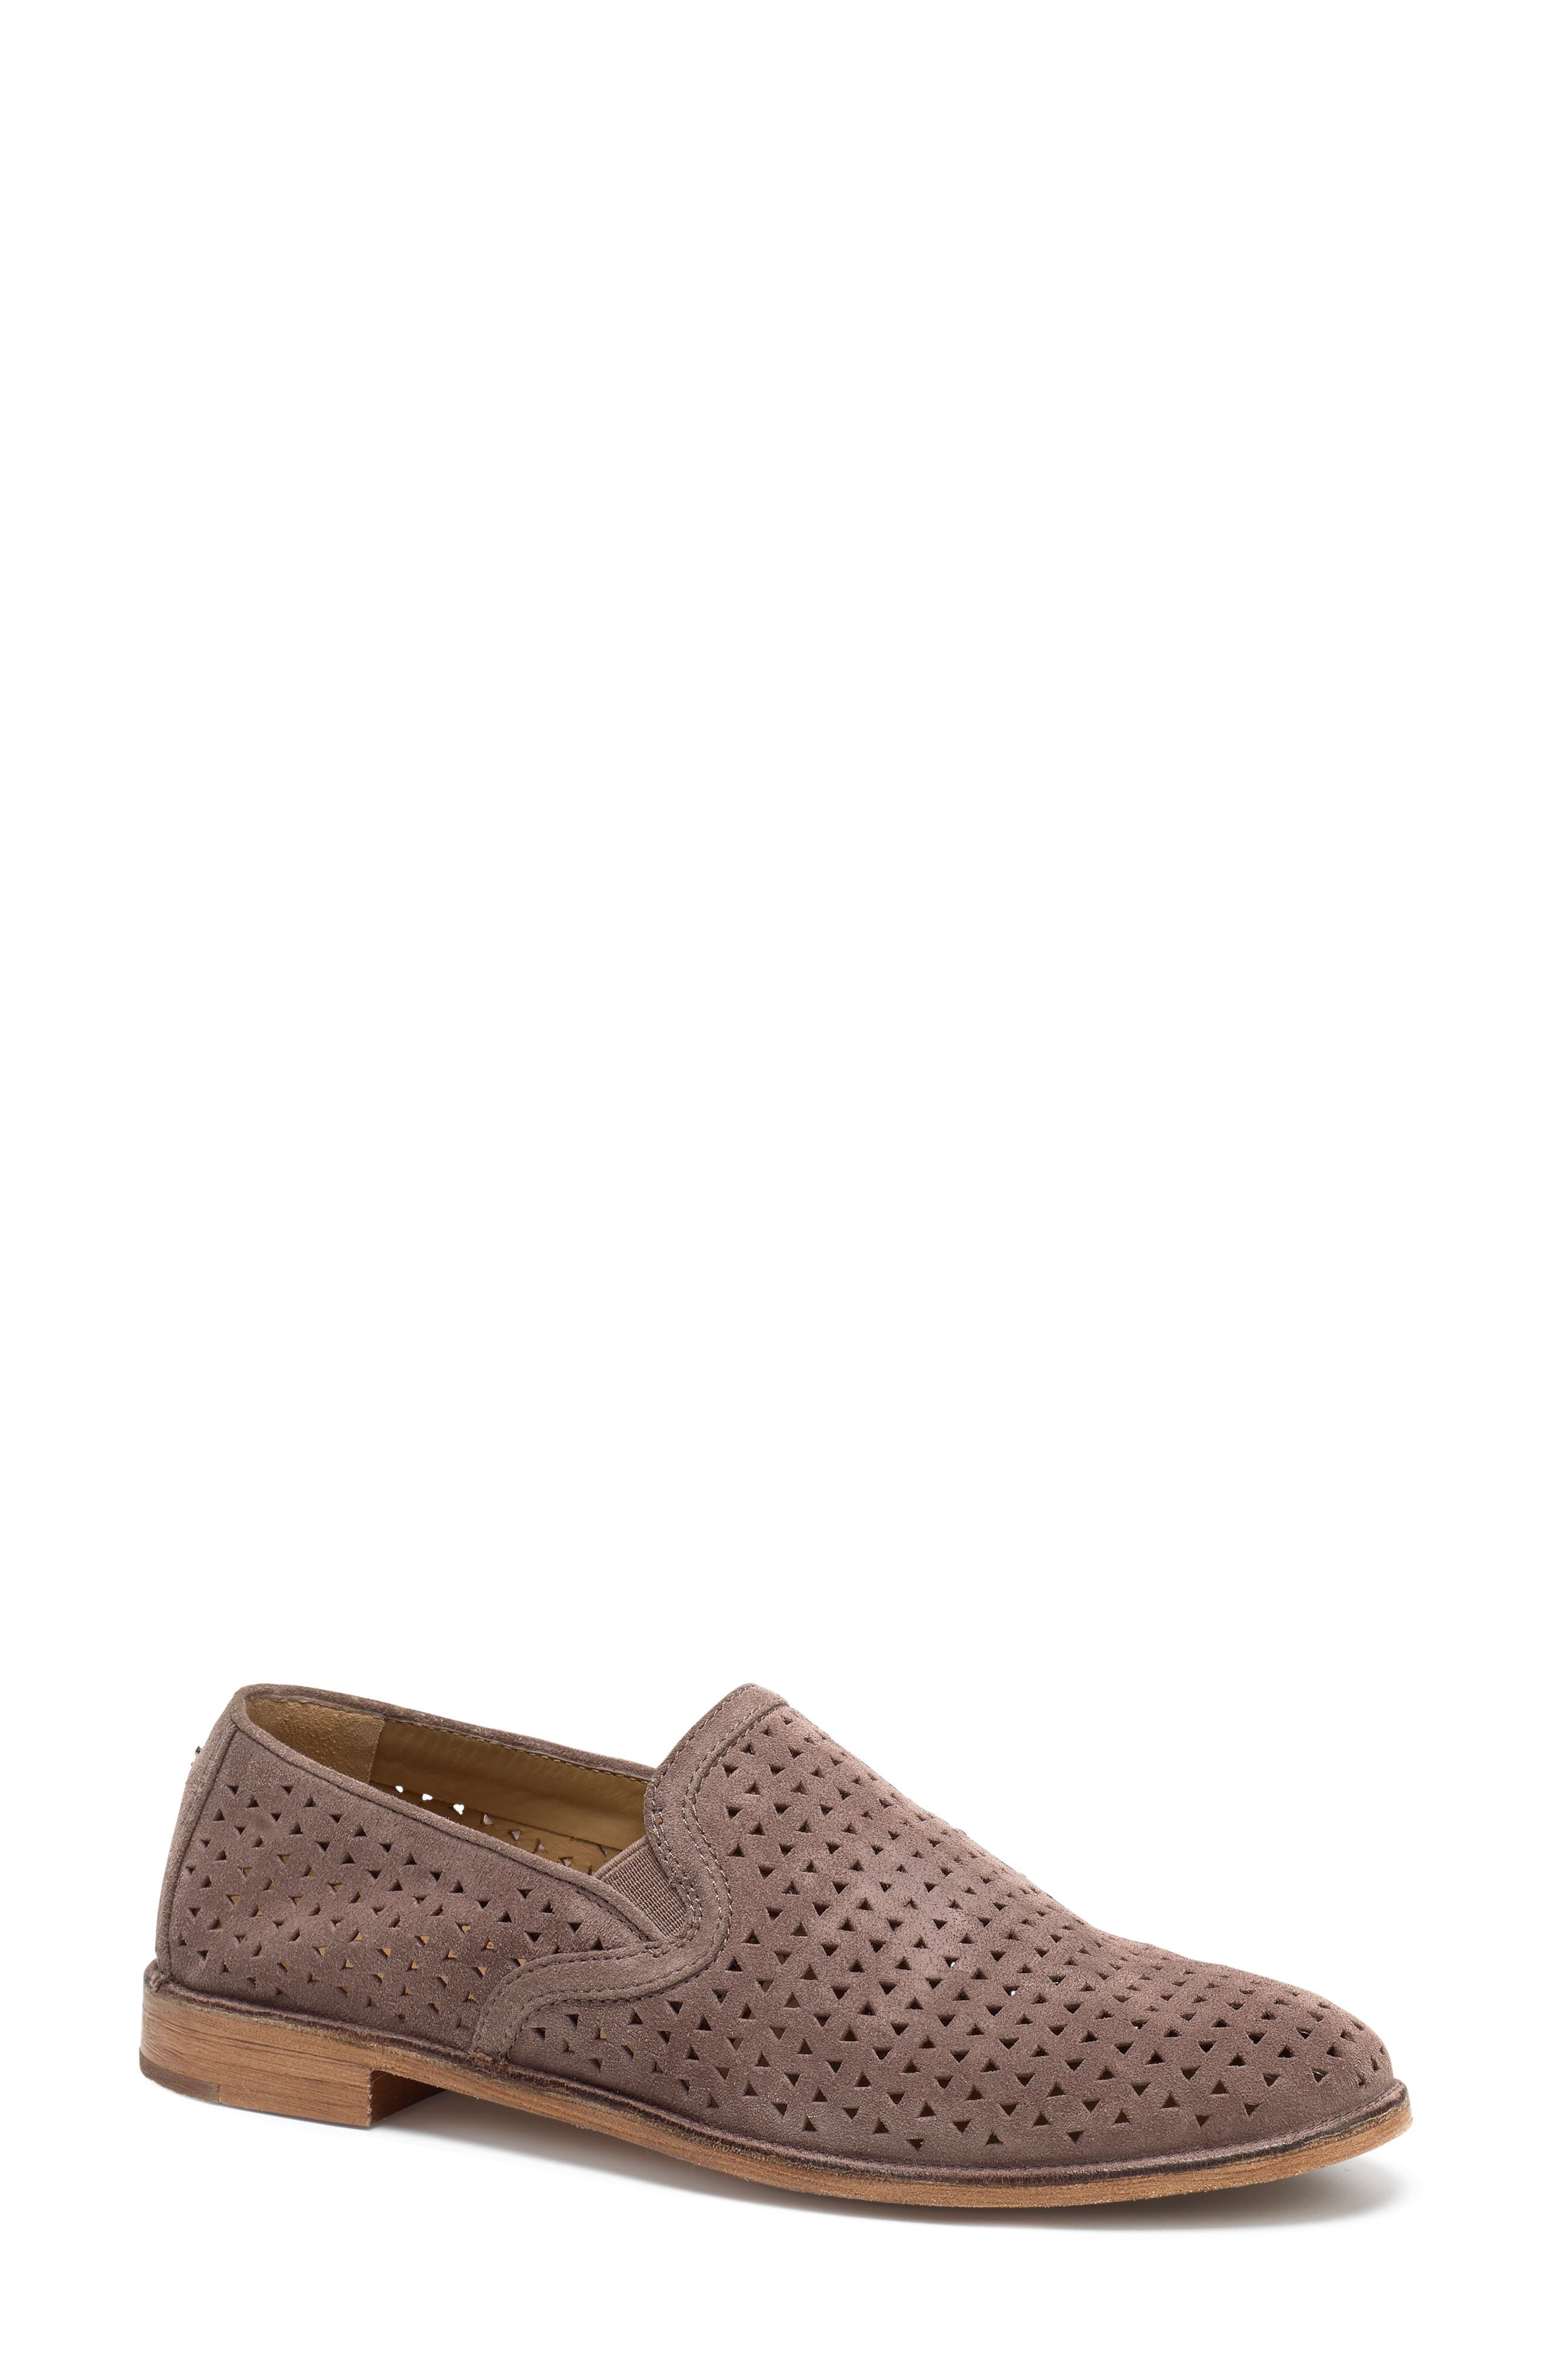 Trask Ali Perforated Loafer, Pink